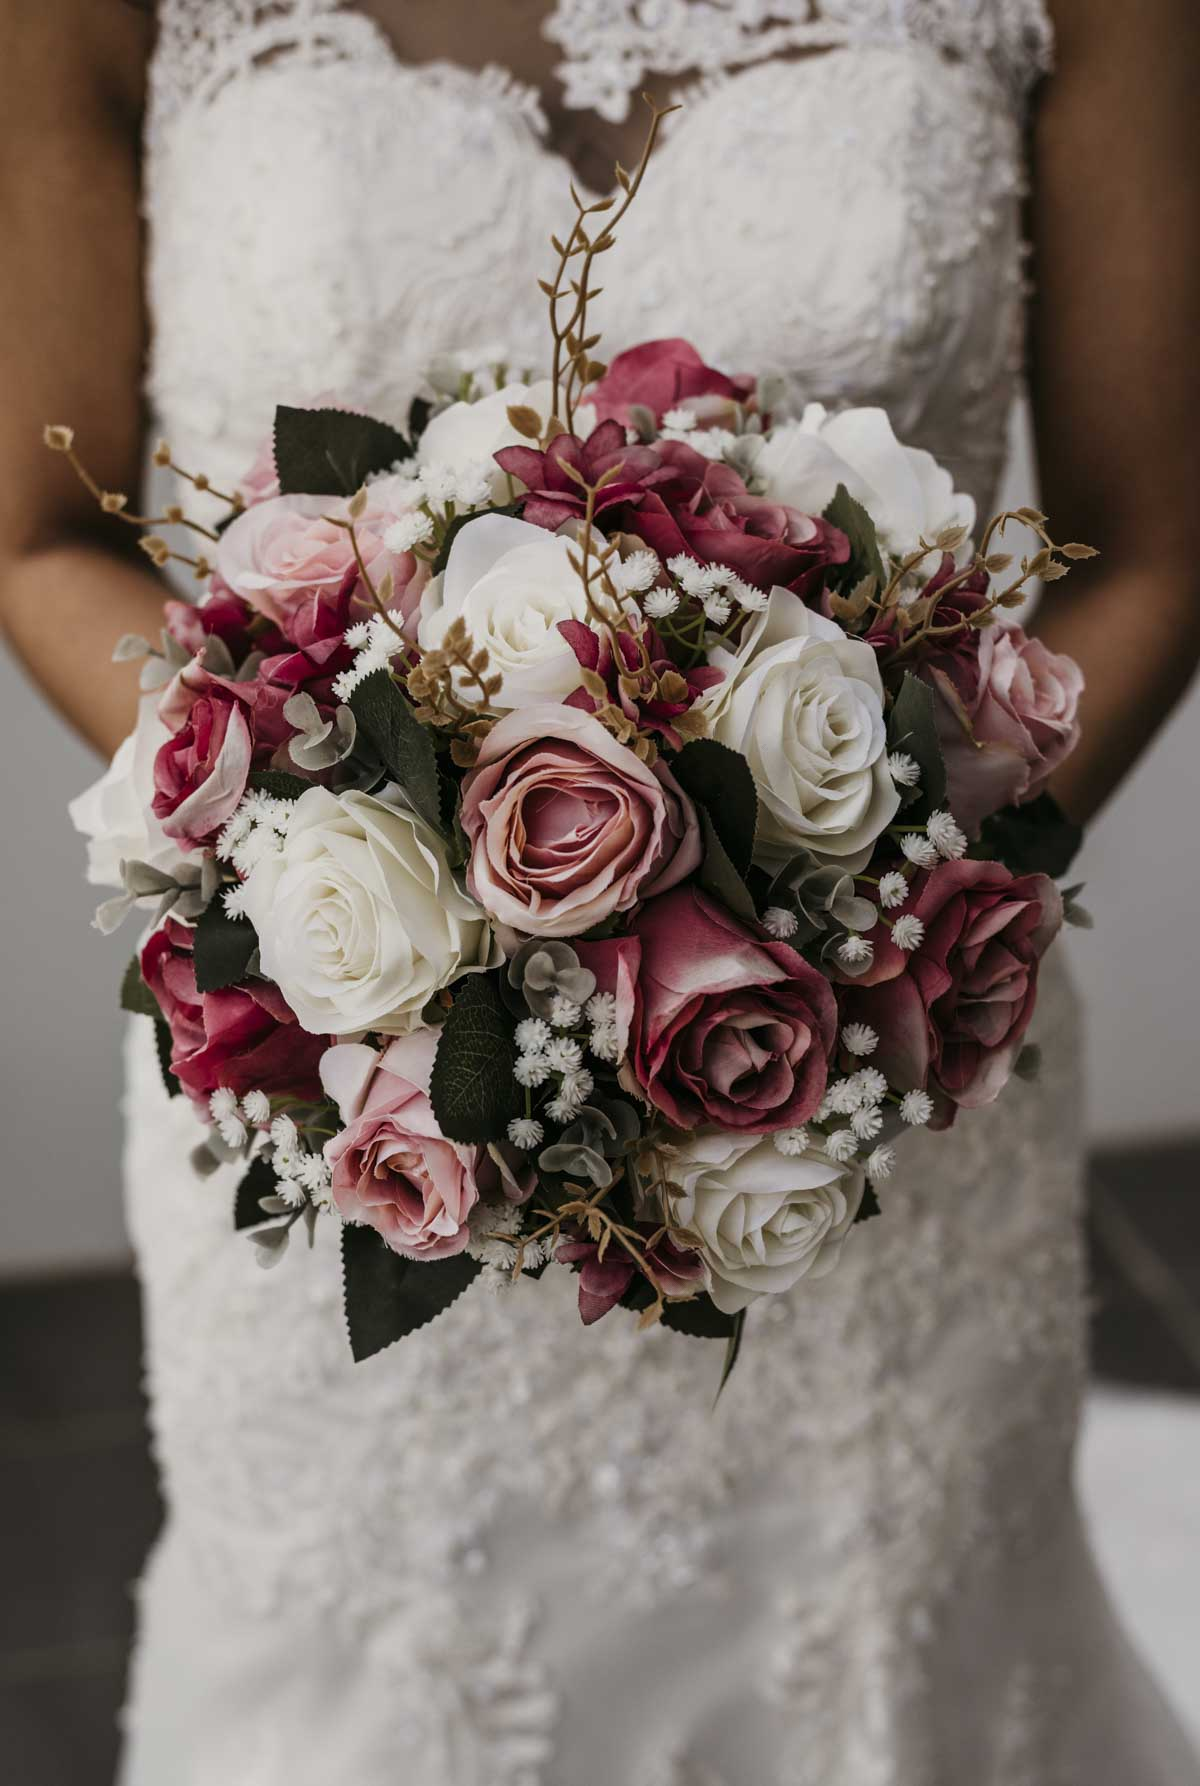 Vietnamese Australia bride, Shay's fresh floral bouquet was full of roses for her Brisbane wedding.